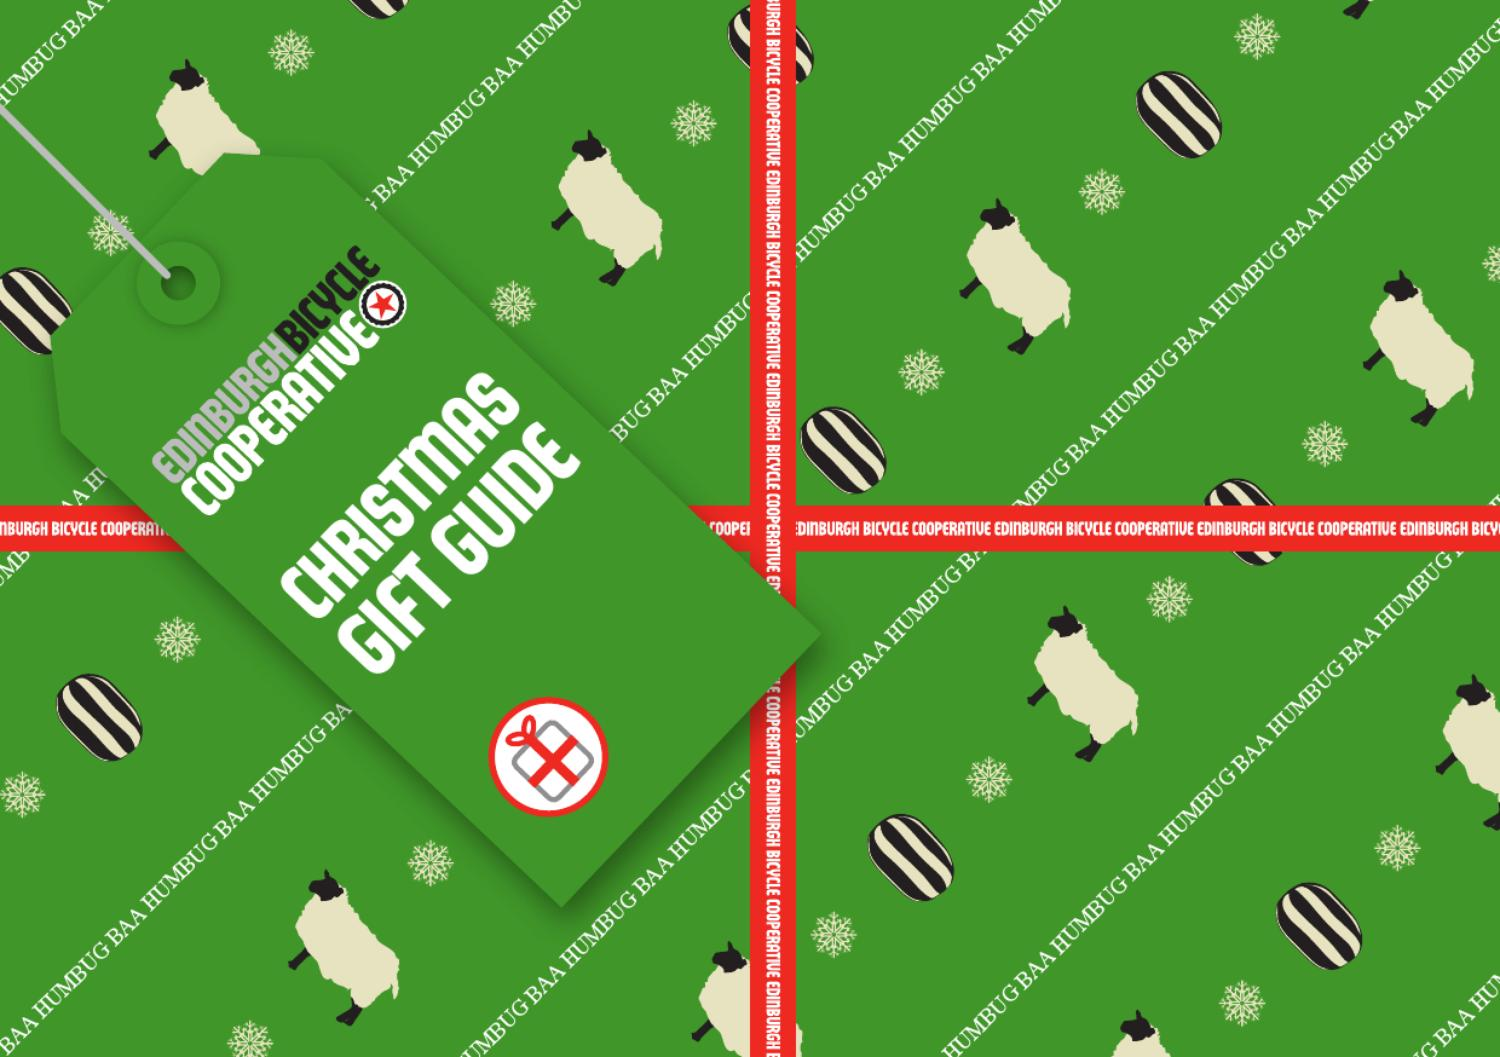 Christmas gift guide 2012 by Edinburgh Bicycle Cooperative Ltd. - issuu 0614c9371